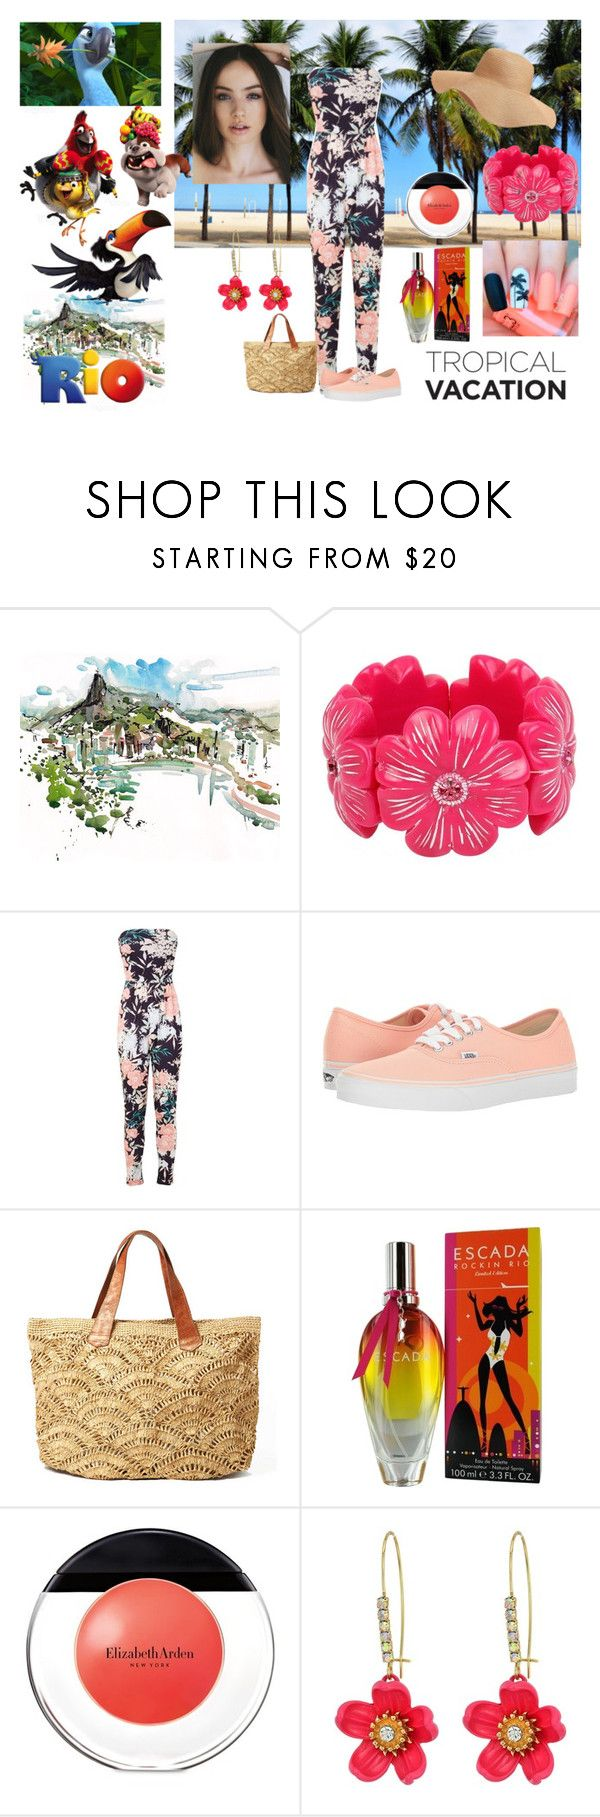 """""""Tropical Vacation"""" by emily-dickson-1 ❤ liked on Polyvore featuring Betsey Johnson, Miss Selfridge, Vans, ESCADA, Elizabeth Arden, Old Navy and rio"""